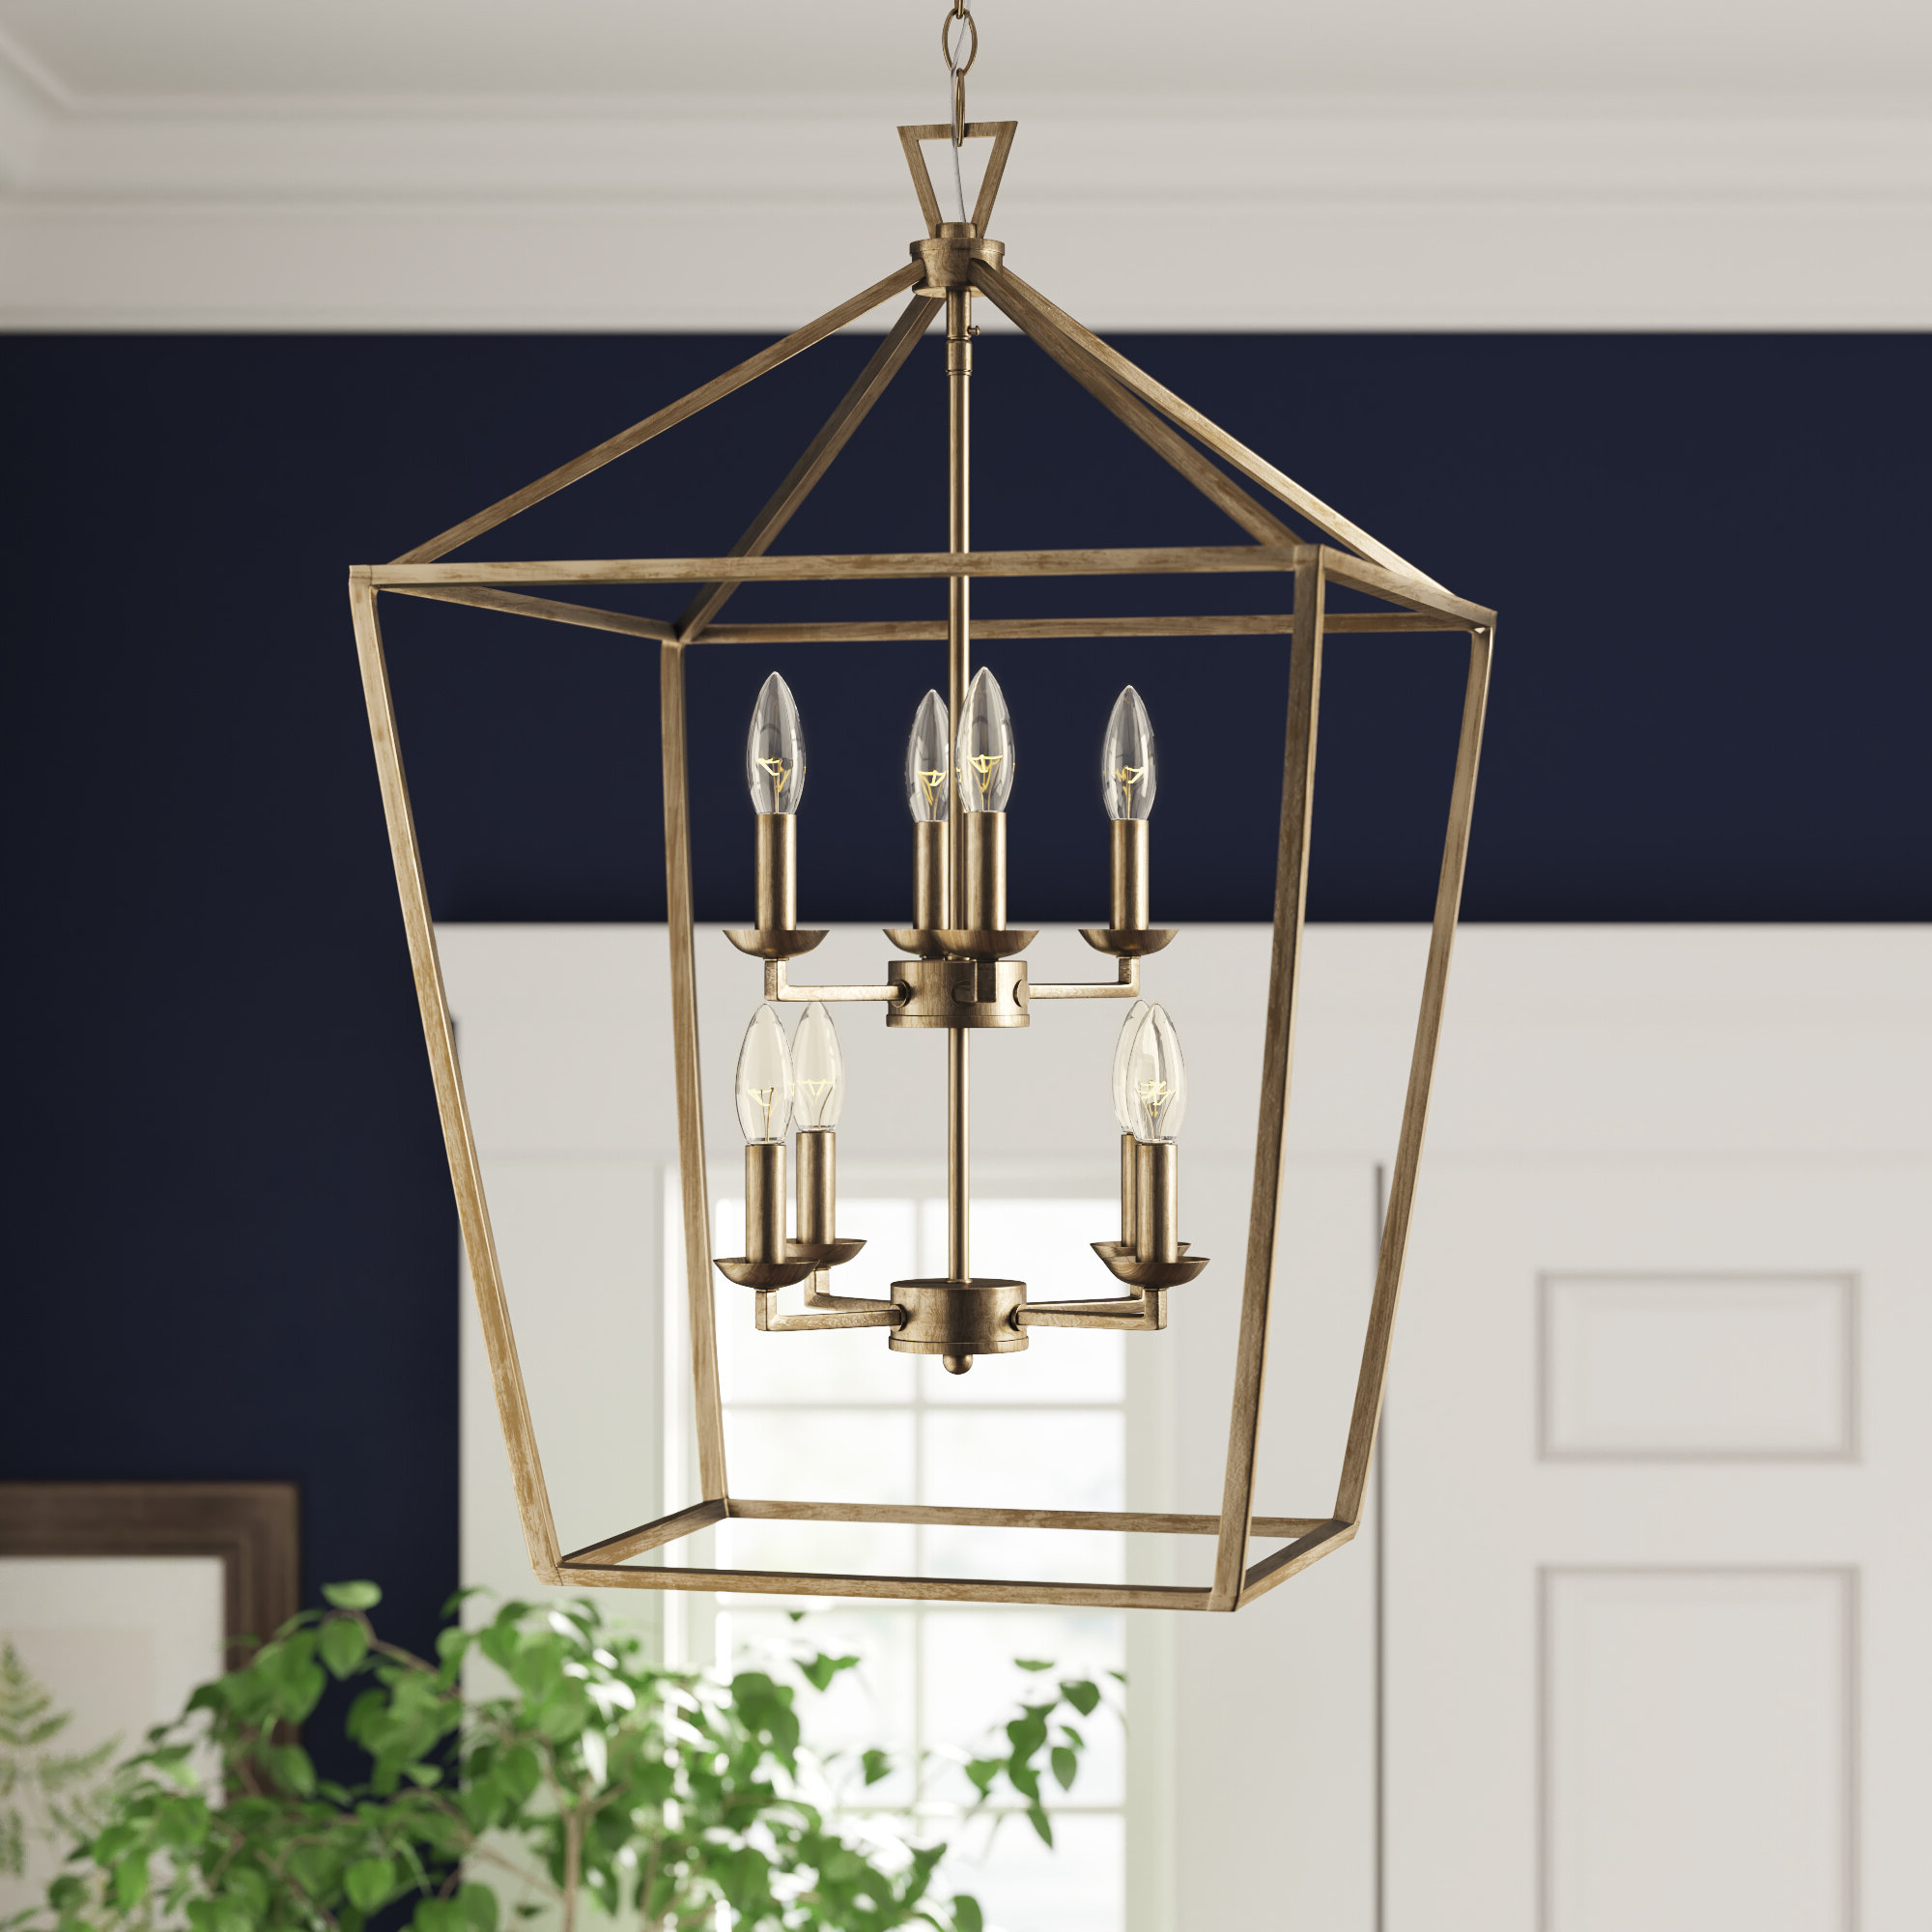 Most Recently Released Laurel Foundry Modern Farmhouse Carmen 8 Light Lantern Geometric Pendant Pertaining To Carmen 8 Light Lantern Geometric Pendants (View 17 of 20)